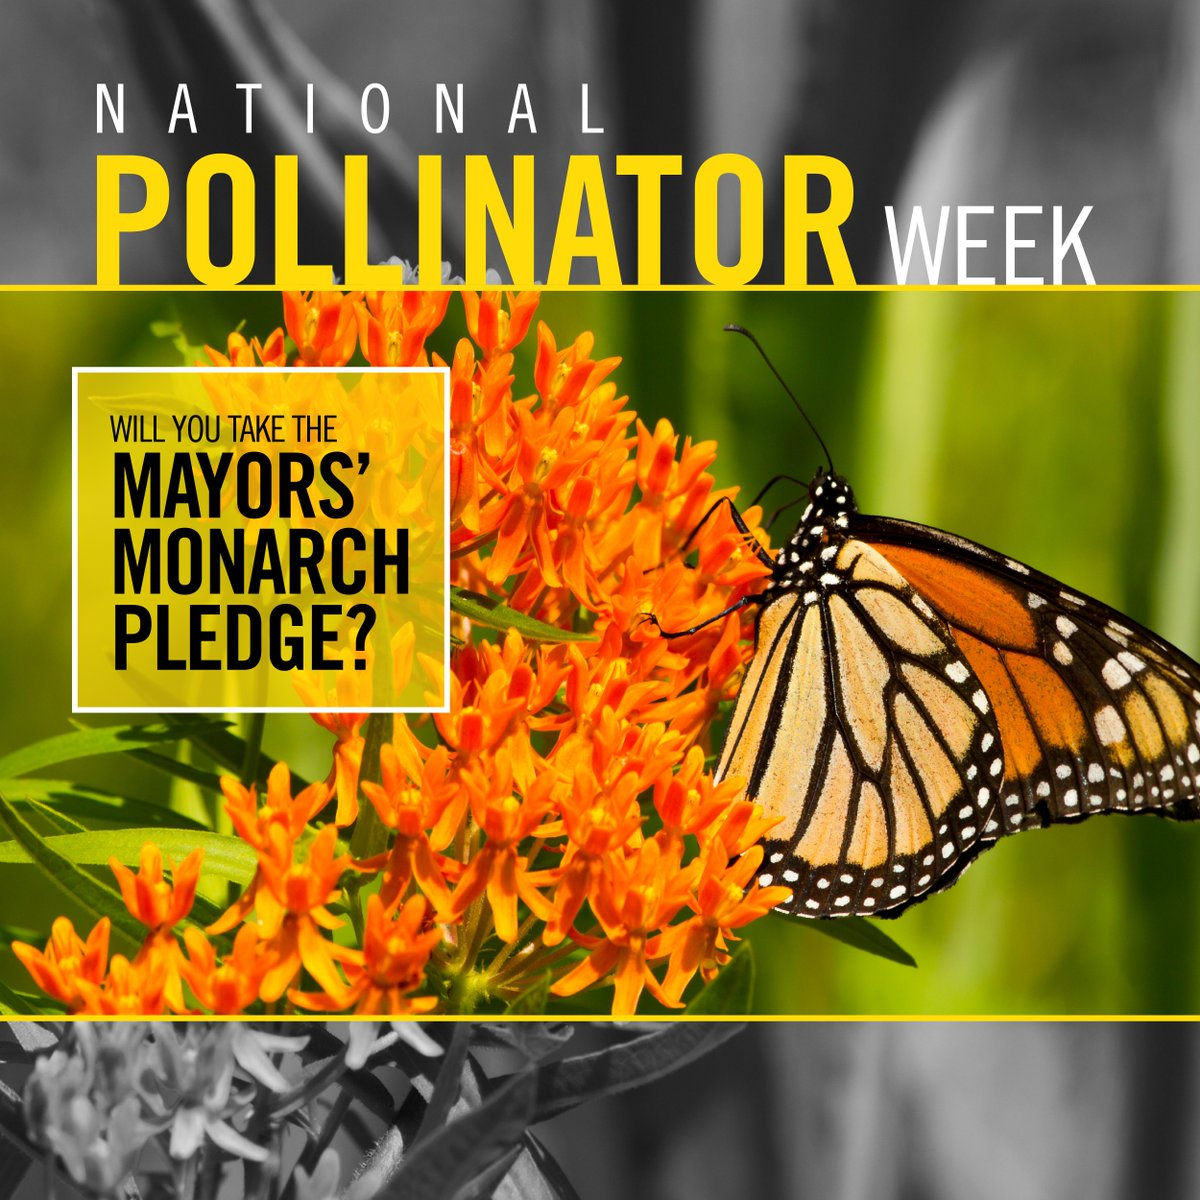 It's #NationalPollinatorWeek  DYK? The Eastern #Monarchbutterfly population has declined 90% over the past 20 yrs. The Region signed the #mayorsmonarchpledge, pledging to create monarch habitat & educate residents on making a difference. Learn more at: https://bddy.me/2FcduUY